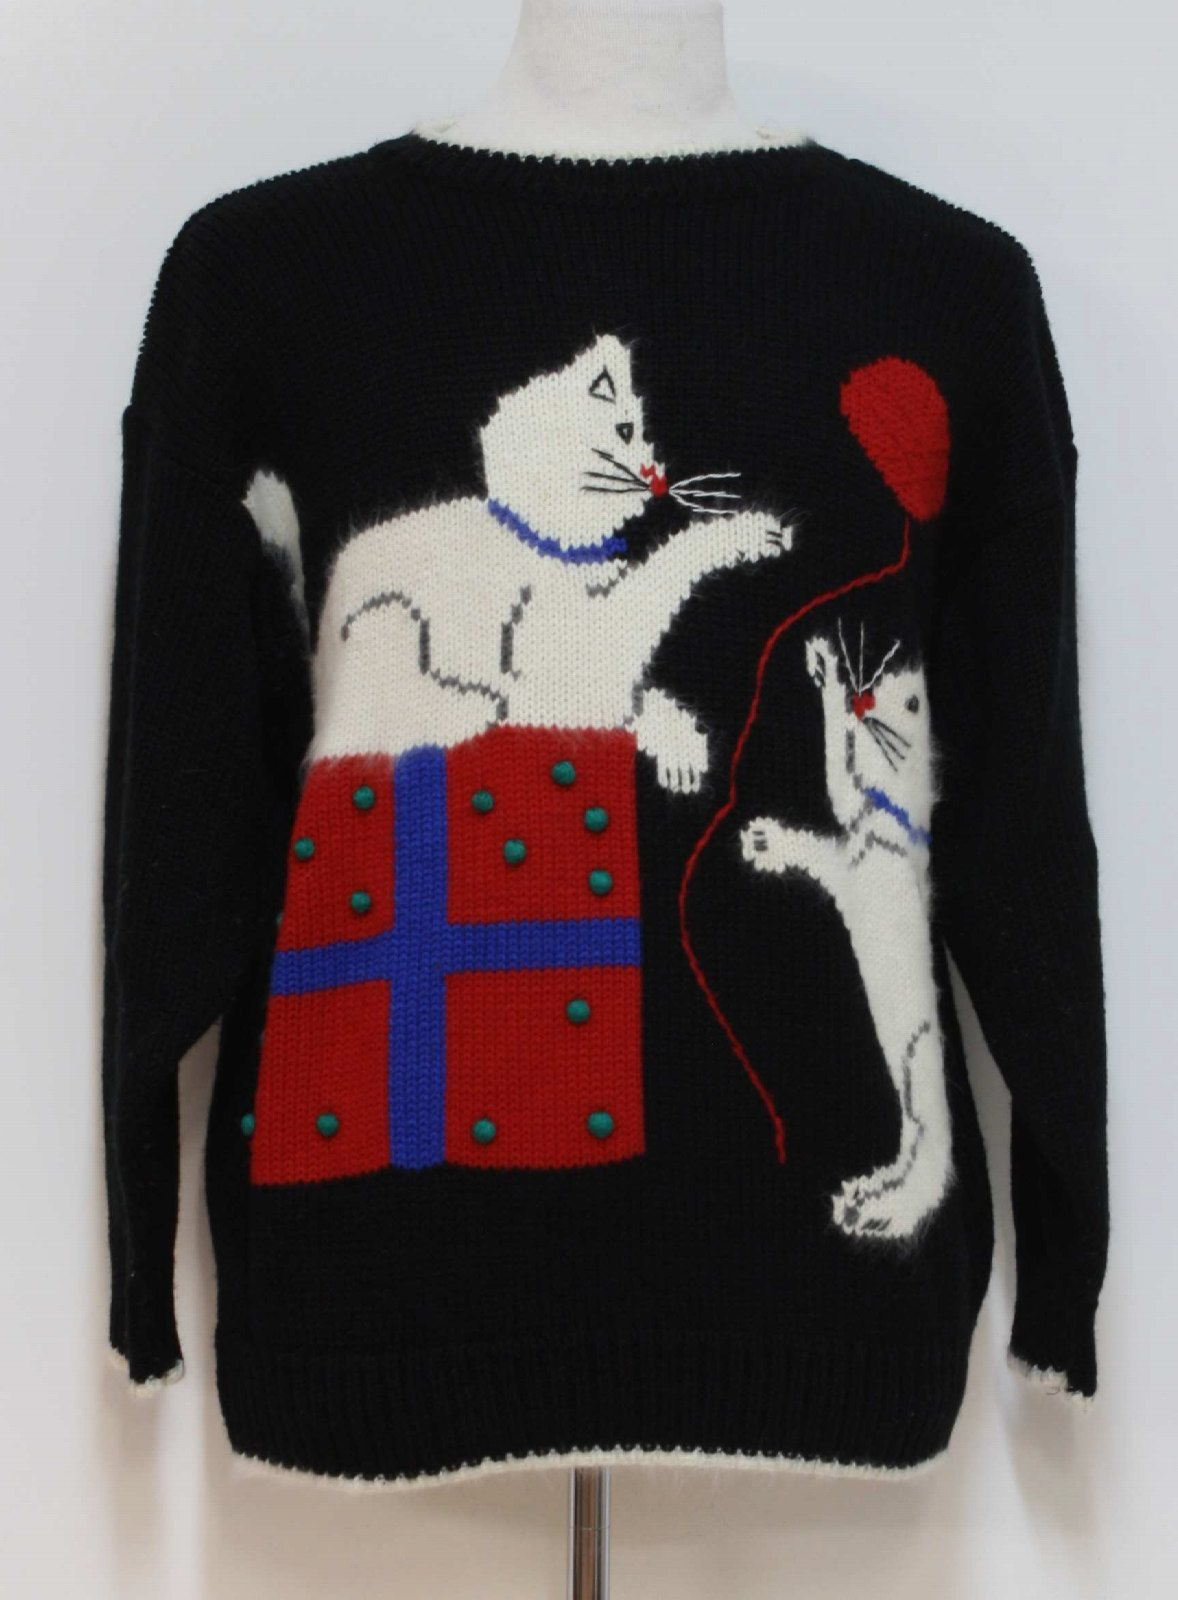 Karen Scott Unisex Cat-Tastic Ugly Christmas Sweater $46.00 Not in stock. Item No. 208542